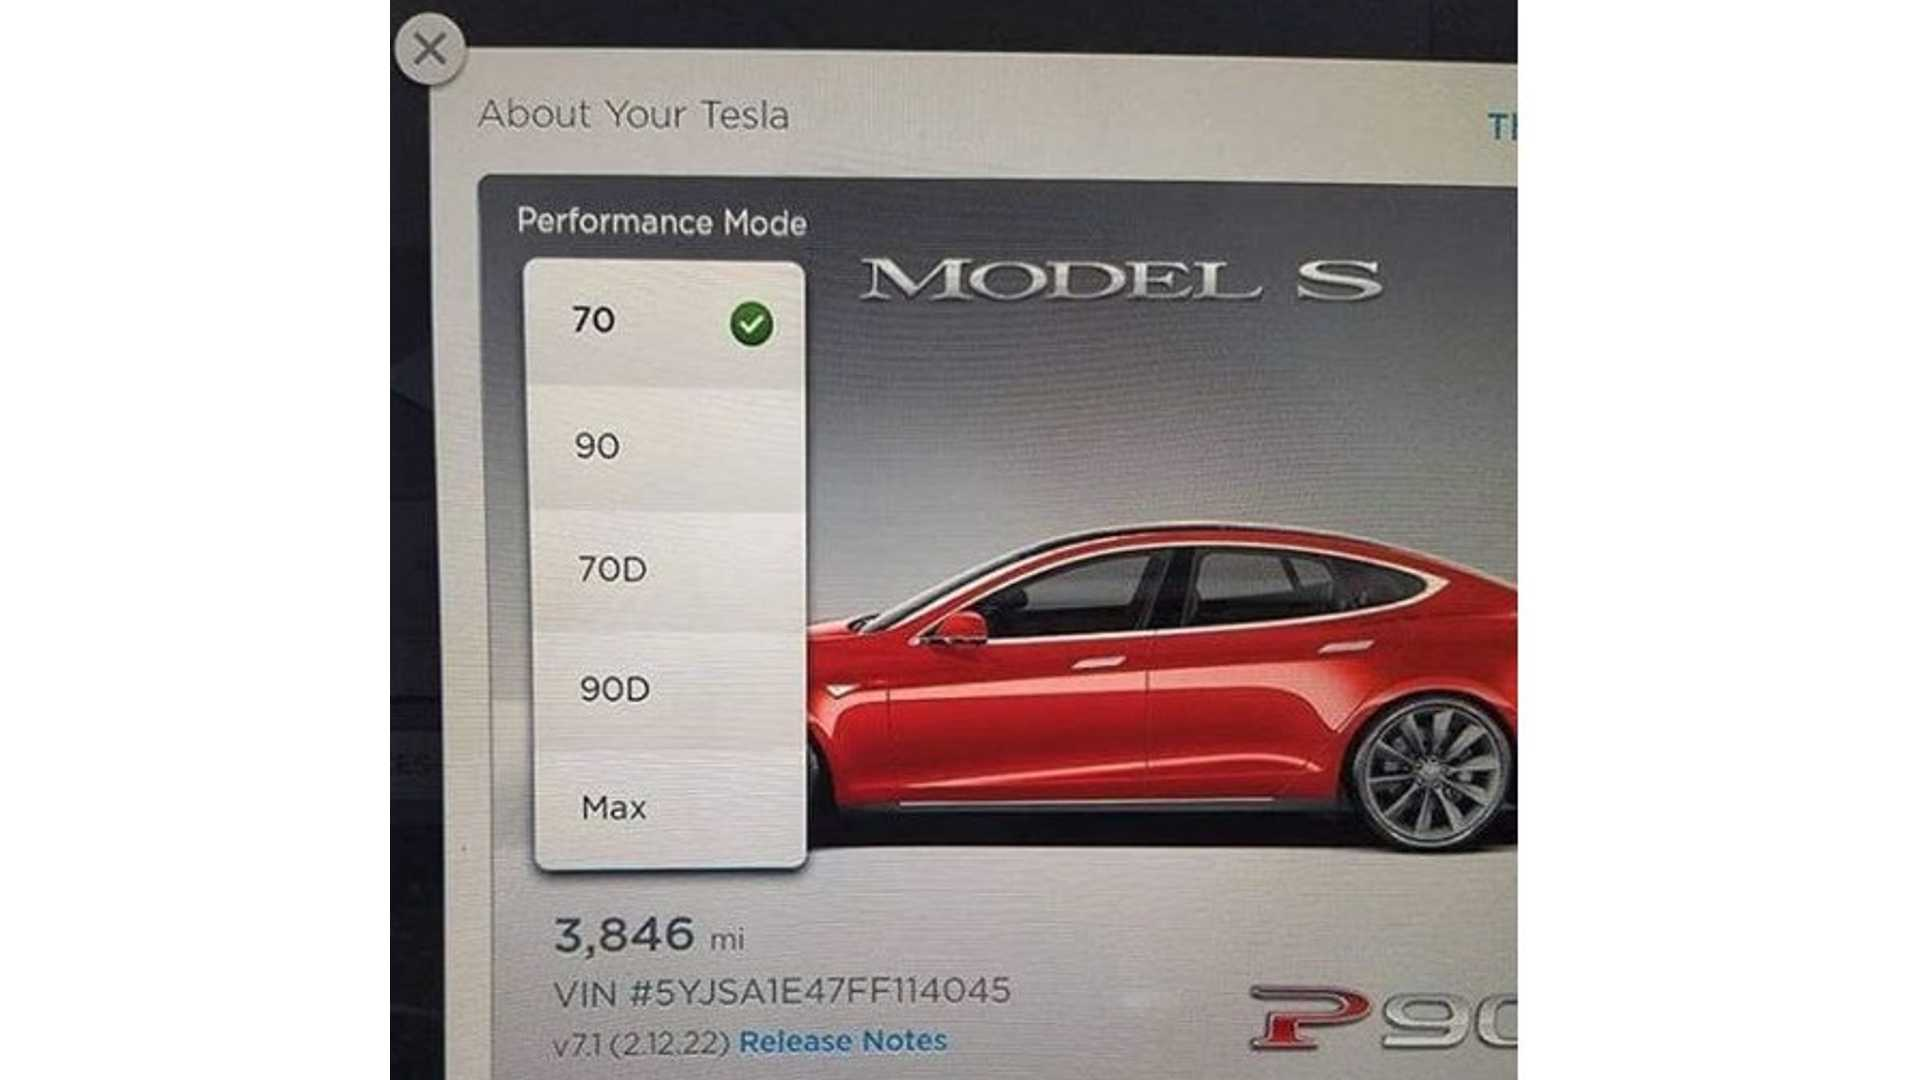 Own A Tesla Model S 90D, But Want To Test A 70D? Now You Can